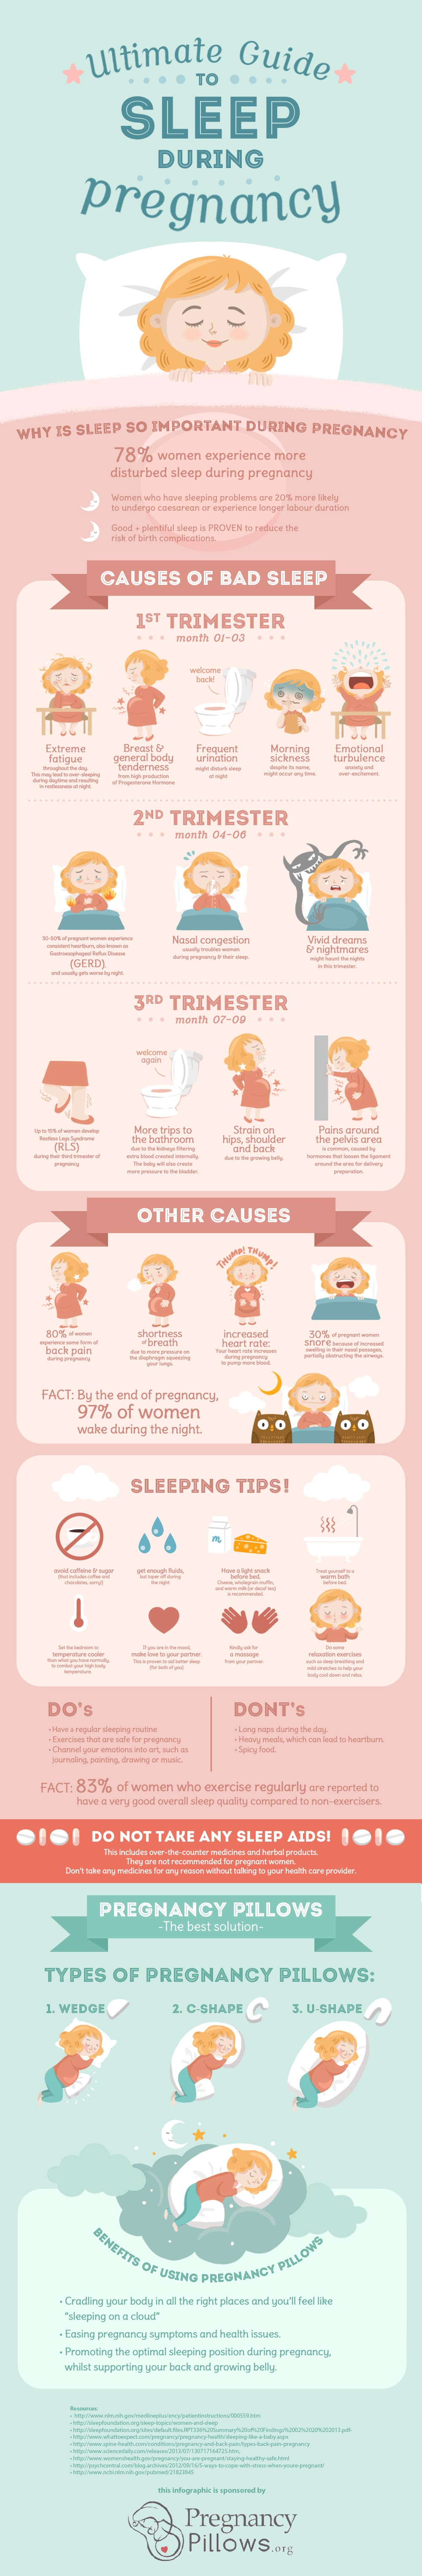 pregnancy sleep infographic